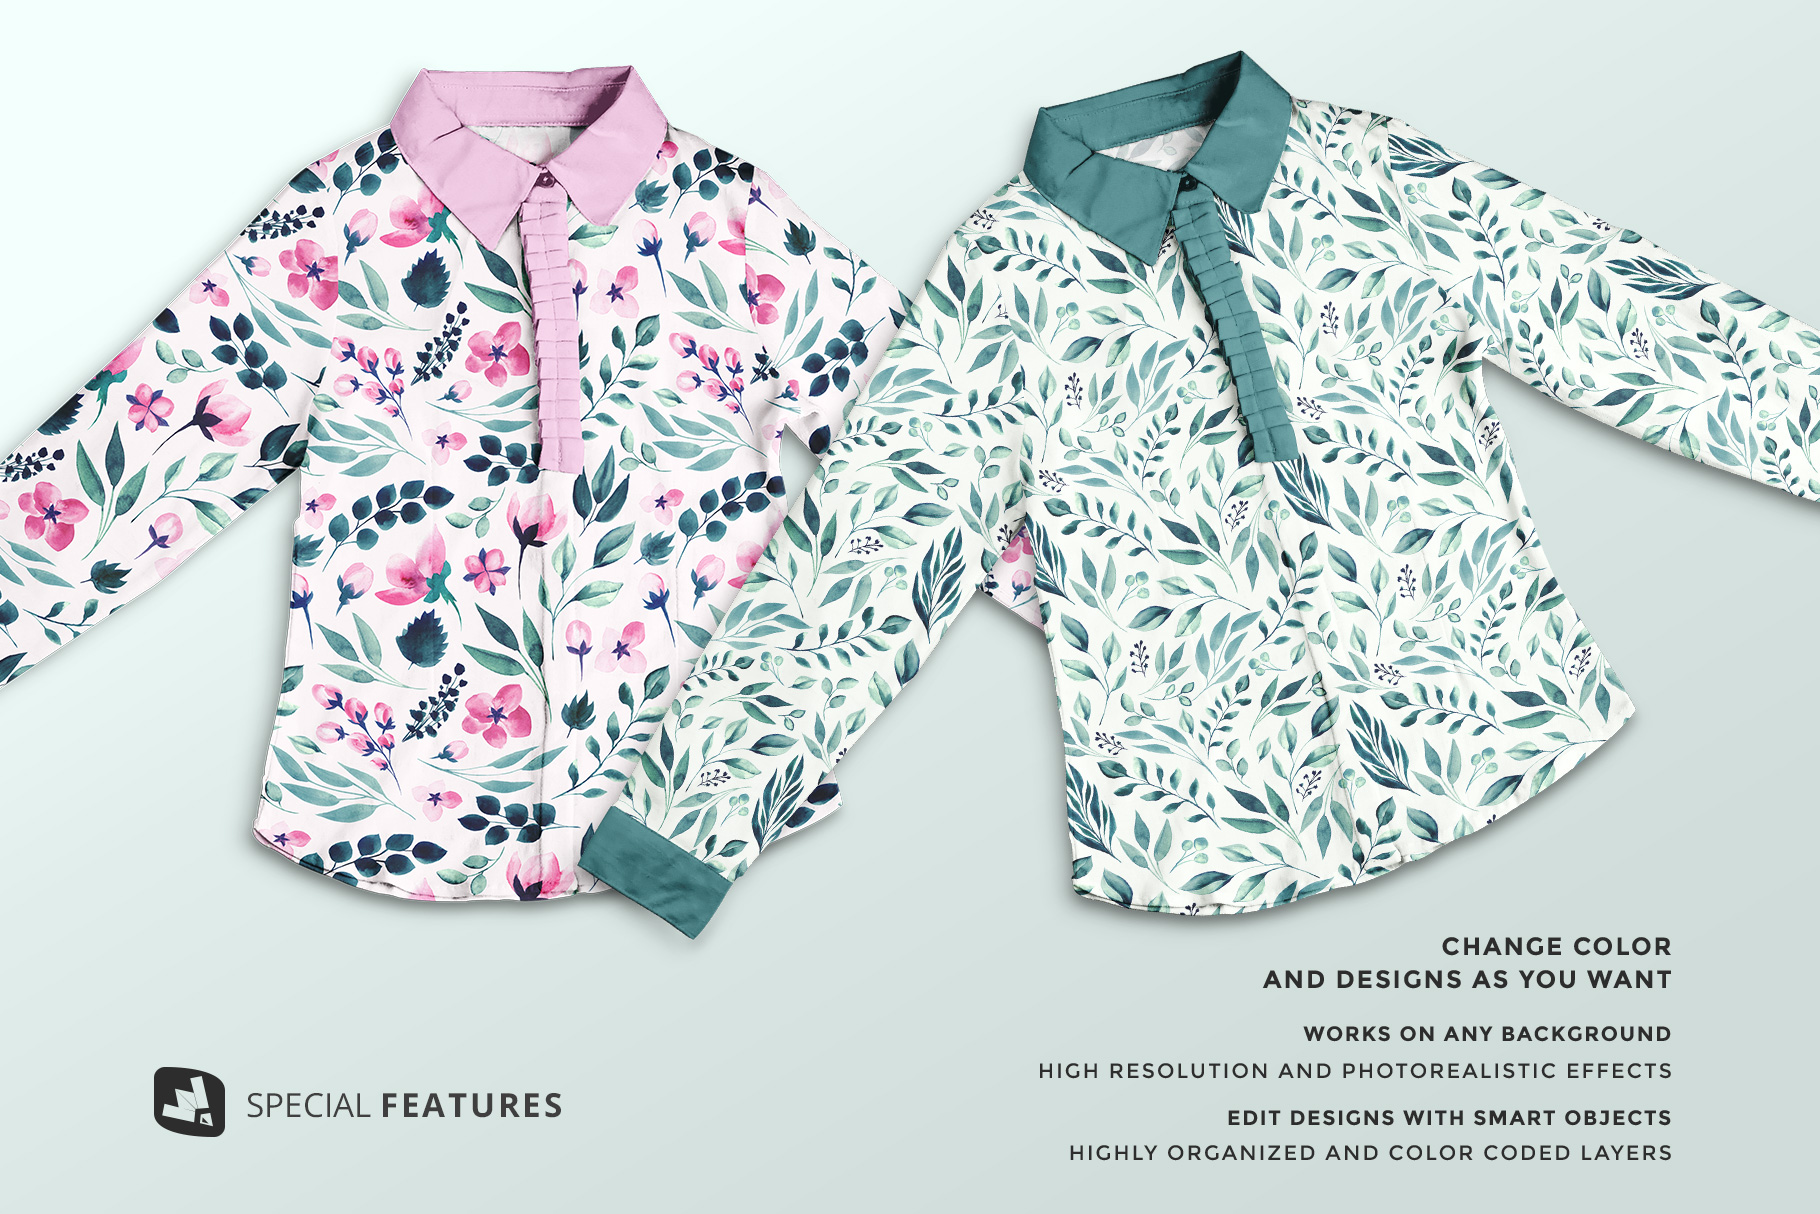 special features of the women's full sleeve blouse mockup